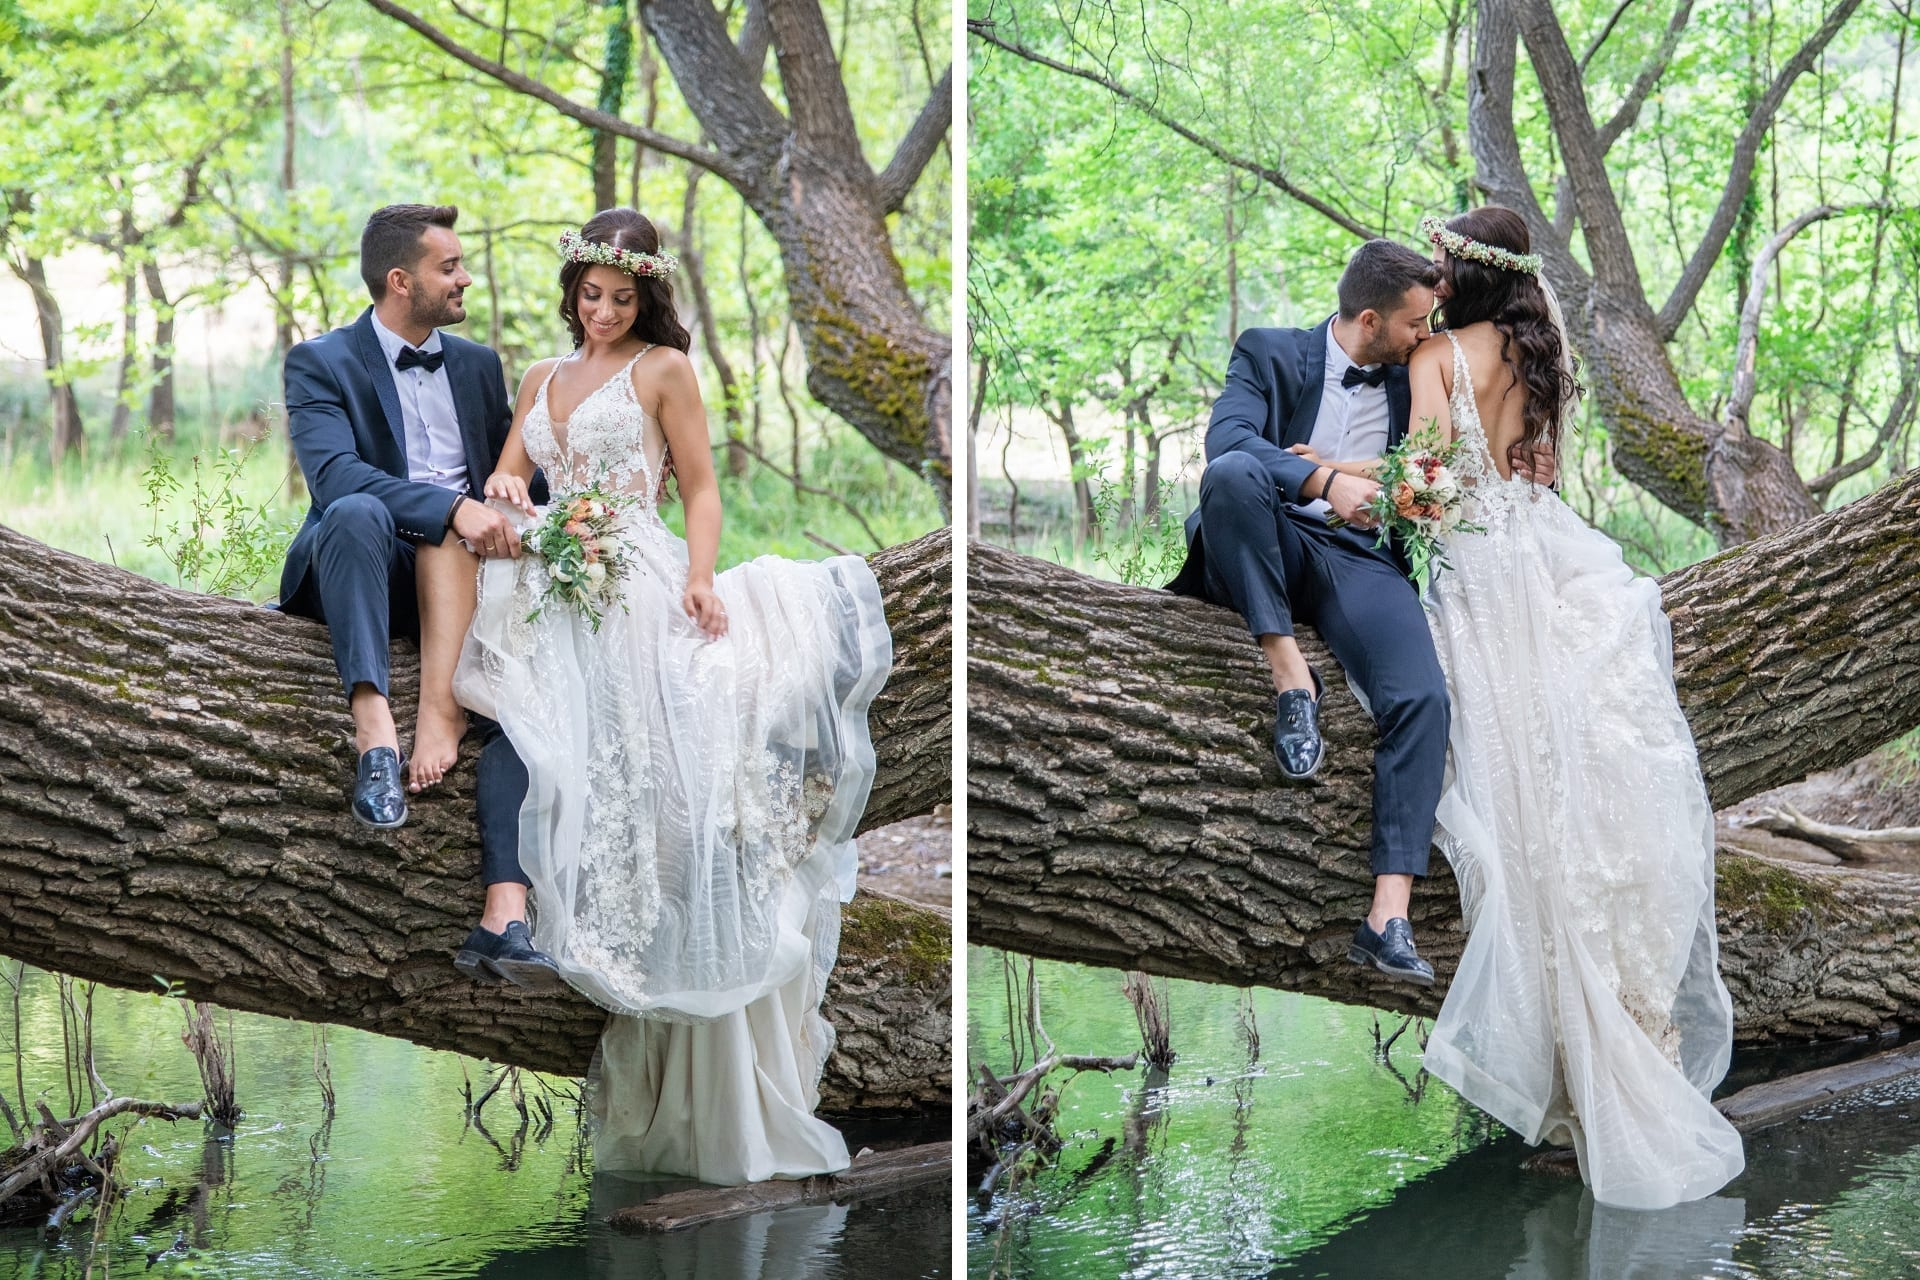 Fairytale Wedding, Vogdanidis + Sons